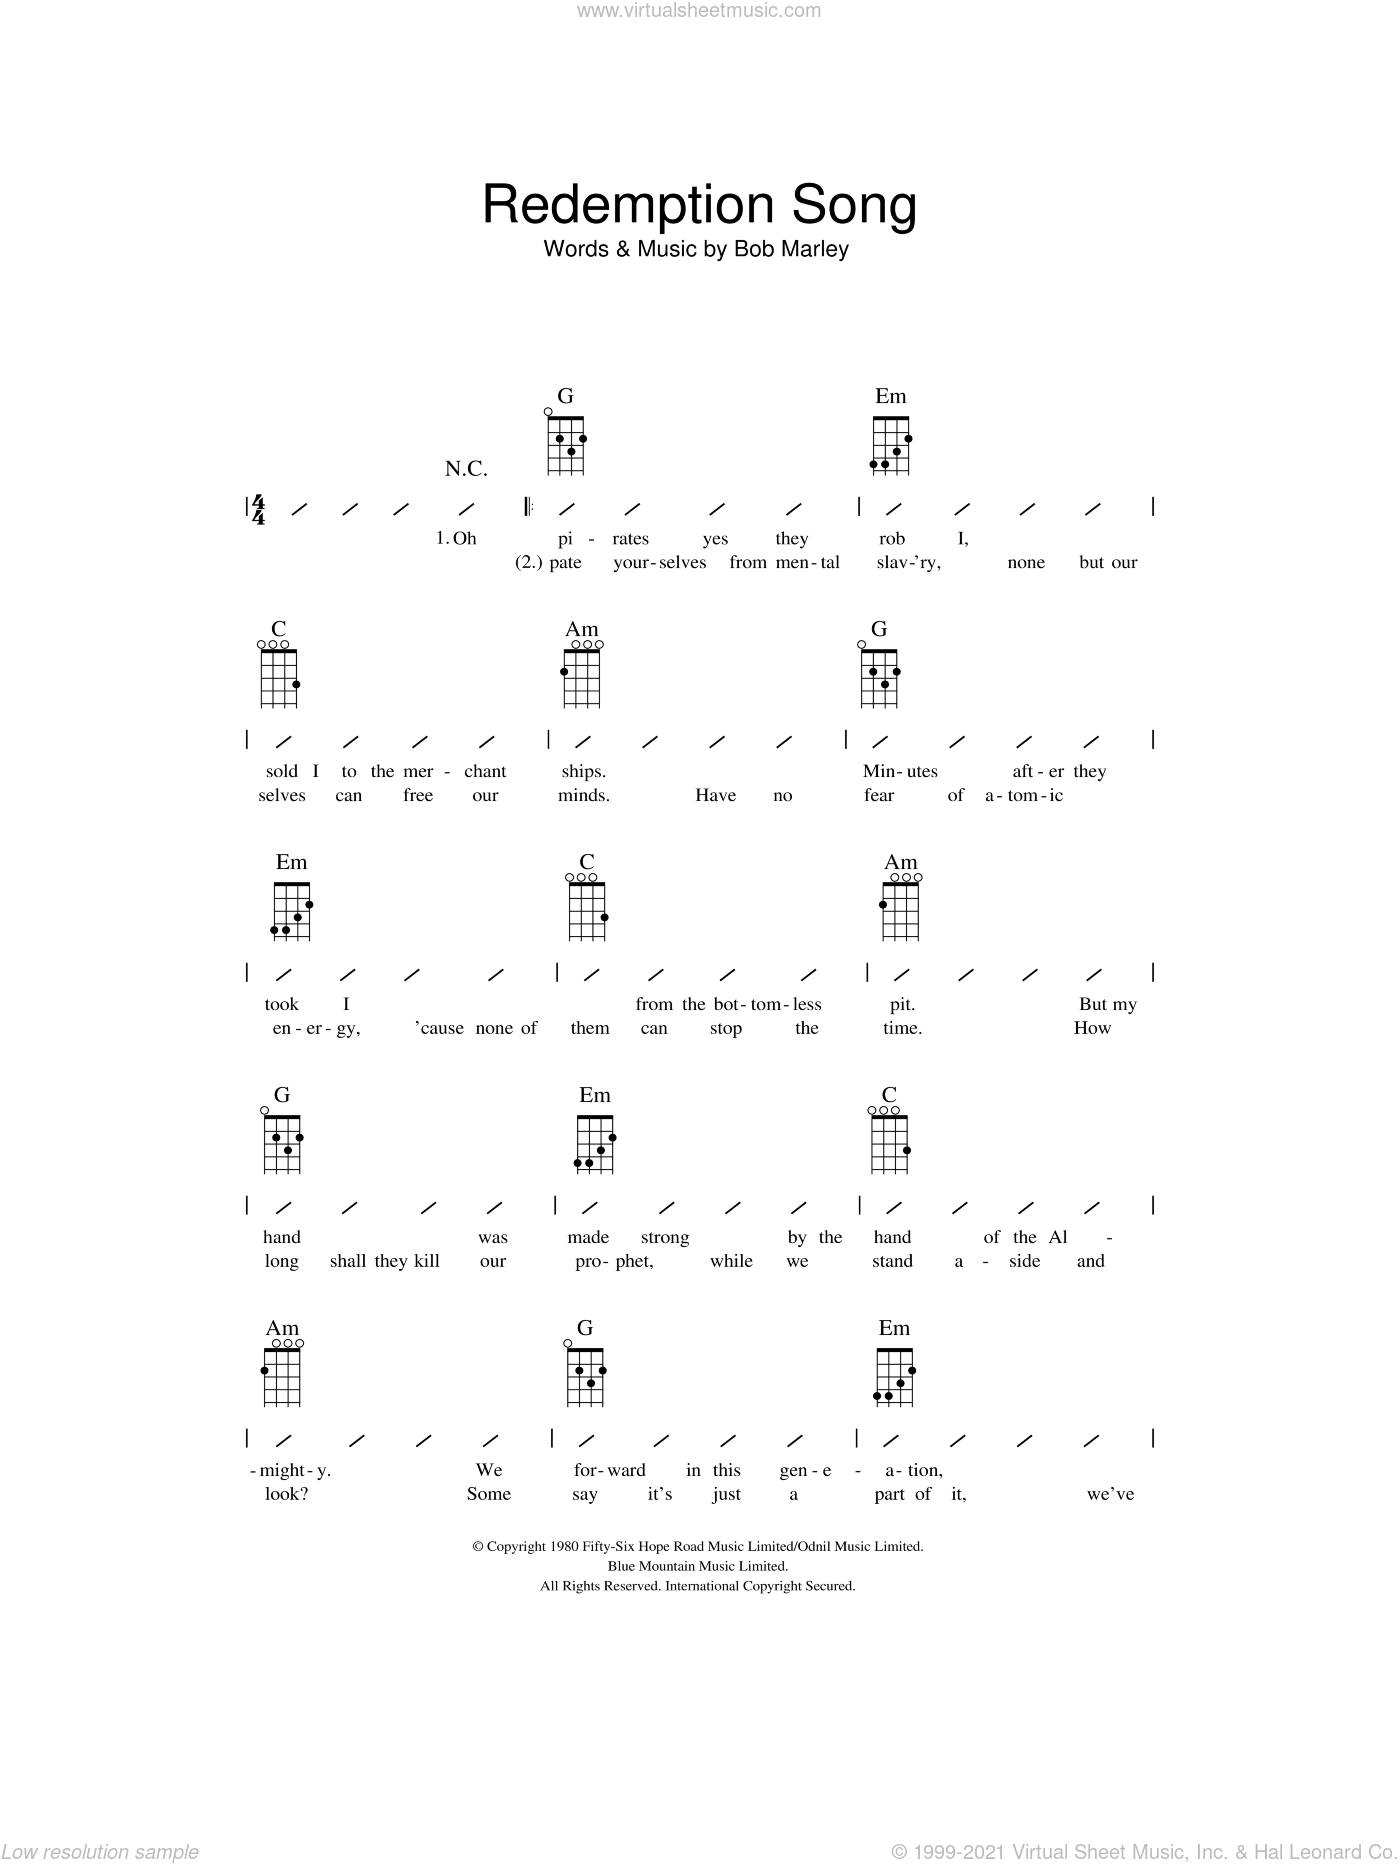 Marley Redemption Song Sheet Music For Ukulele Chords V2